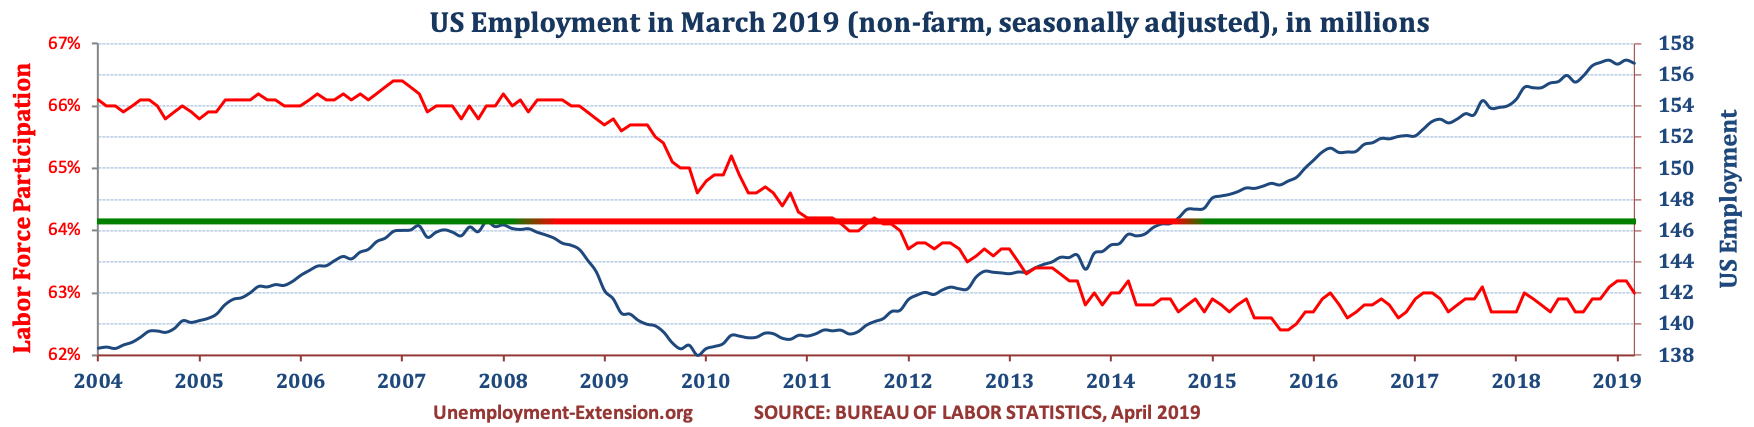 Total US Employment (non-farm, seasonally adjusted) in January of 2019. US economy has lost approximately 10 million jobs in comparison to pre-resession level.